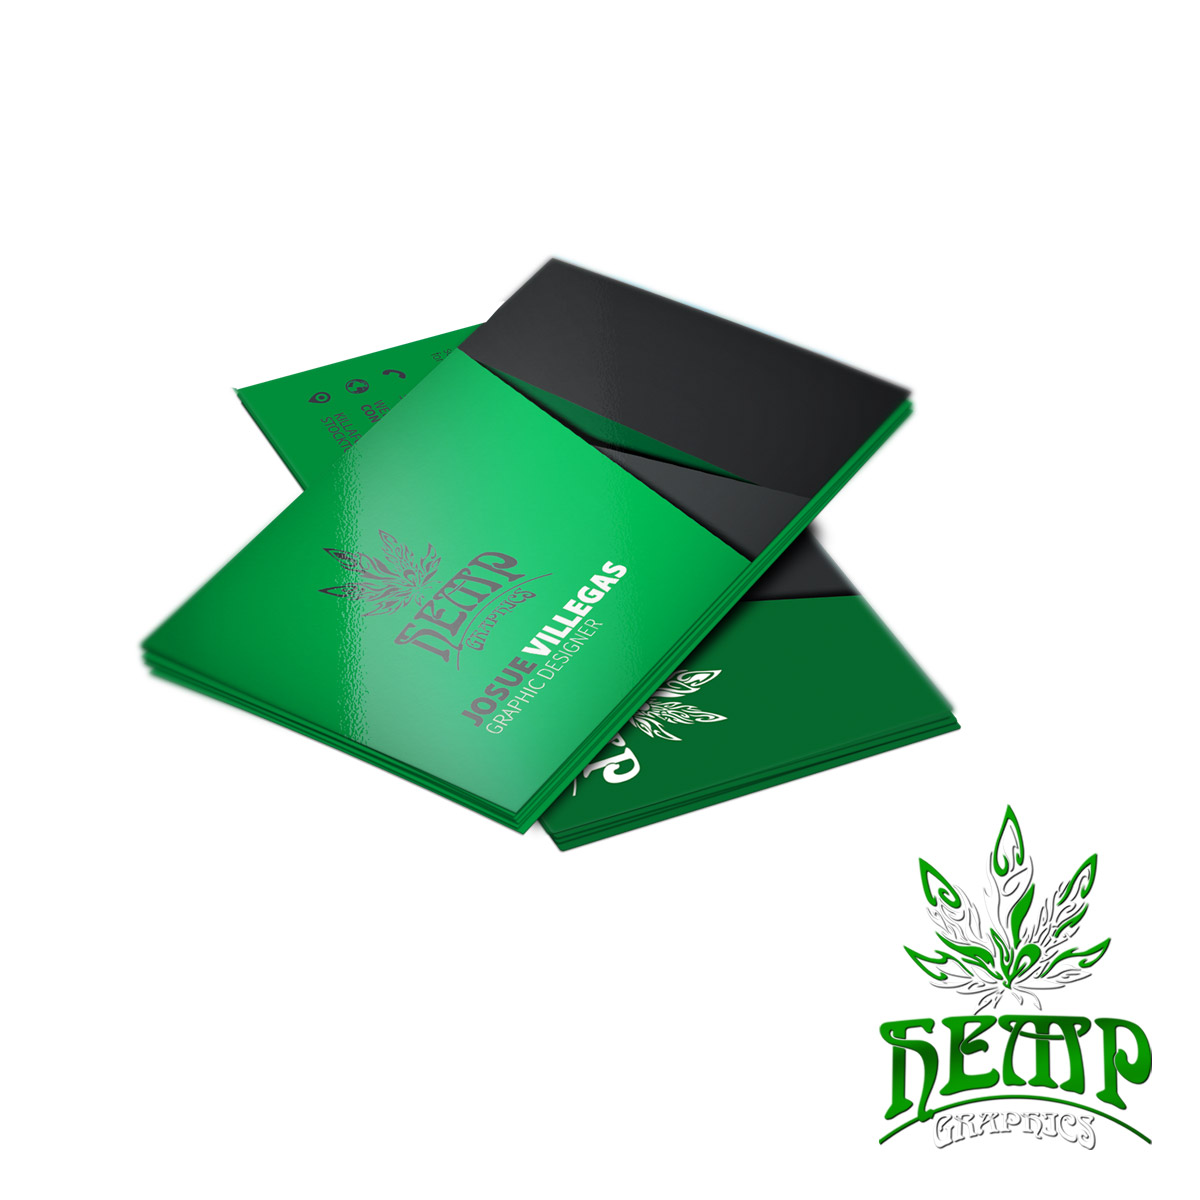 Standard Business Cards - Hemp Graphics | Medical Marijuana ...